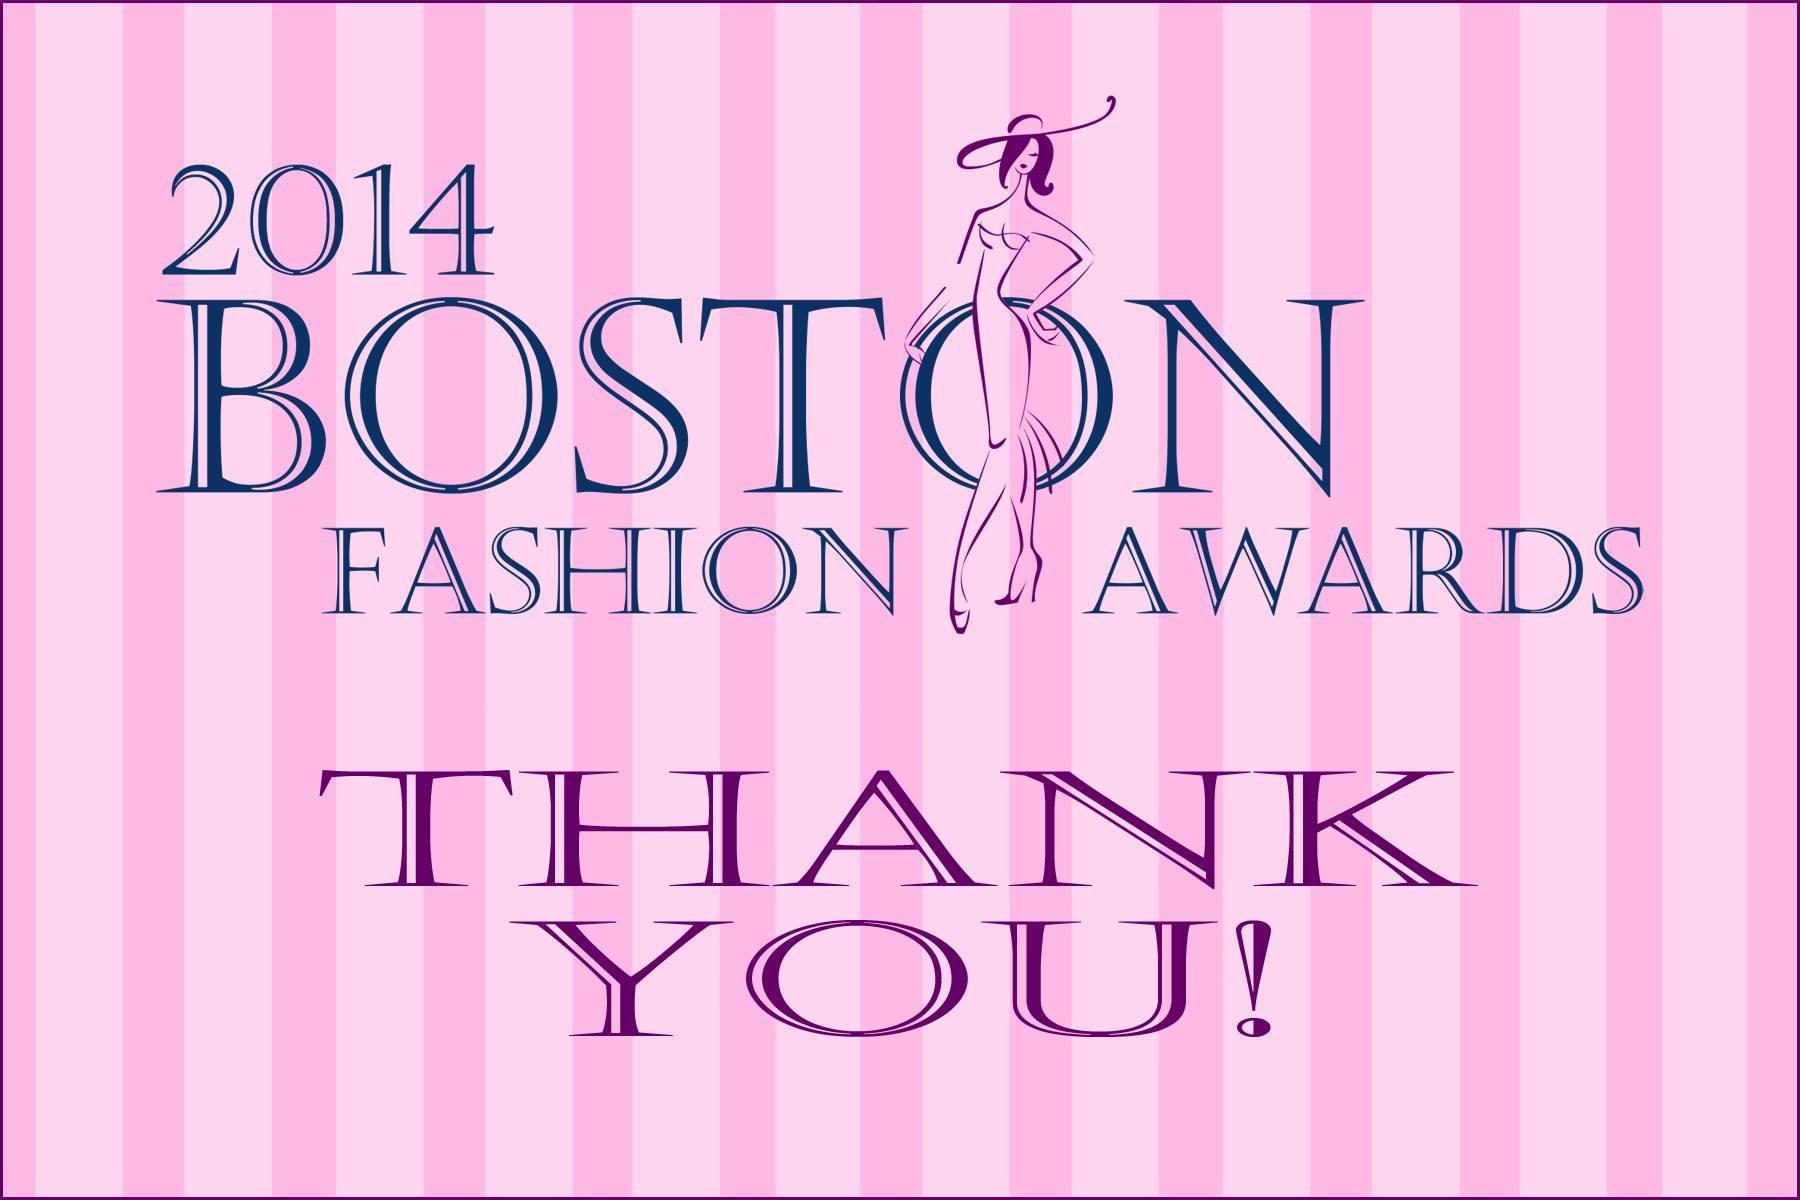 Dawnamatrix Designer of the Year in Boston Fashion Awards Swimwear/Intimate category